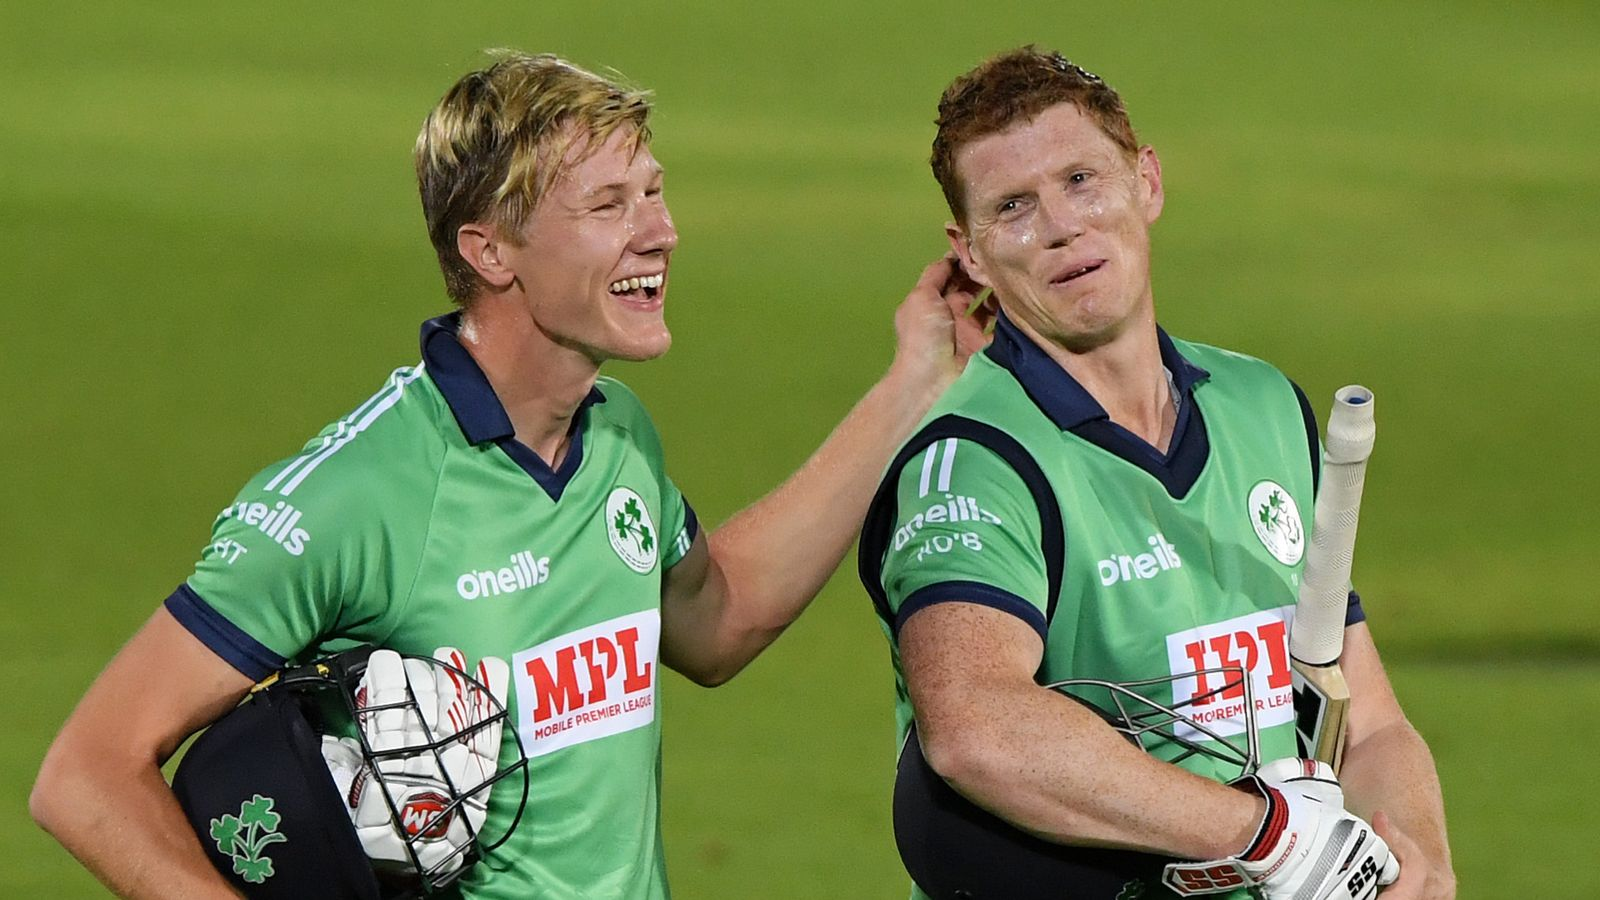 Ireland's 'unbelievable' win over England can start new chapter of Irish cricket, says Niall O'Brien